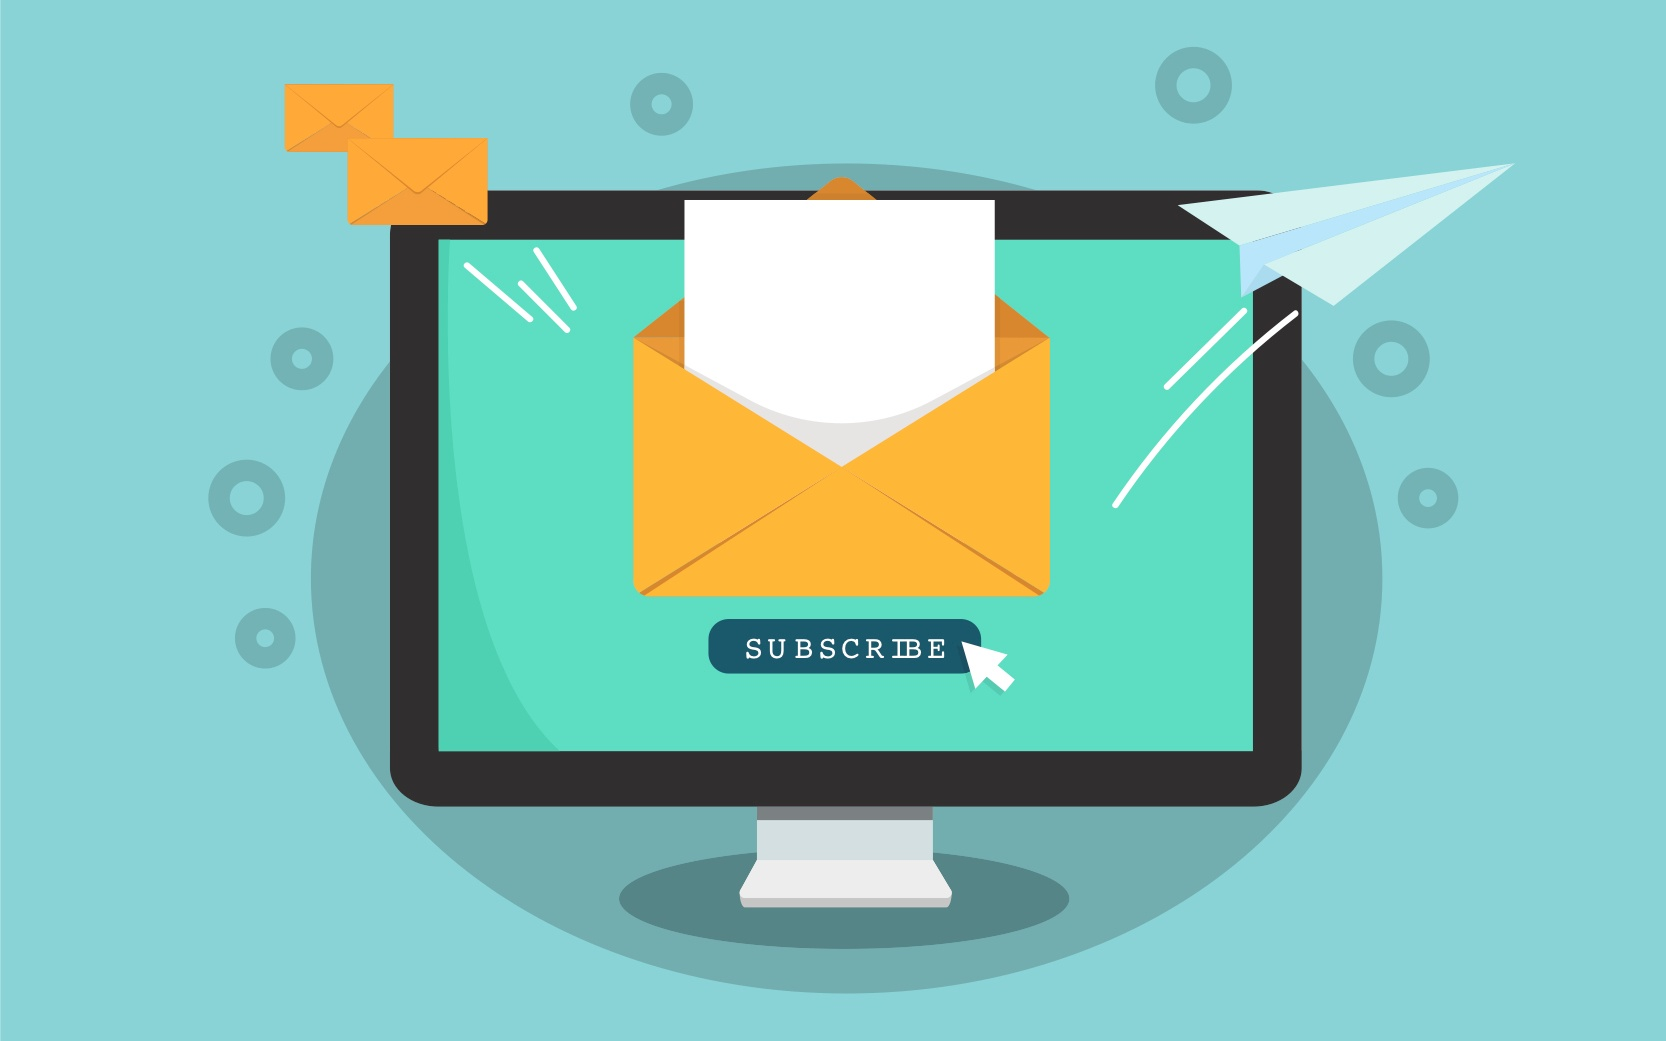 email marketing list mail subscribe streaming emails mistakes these problems twitch subscribers strategies lifewire think really ways database ecommerce social